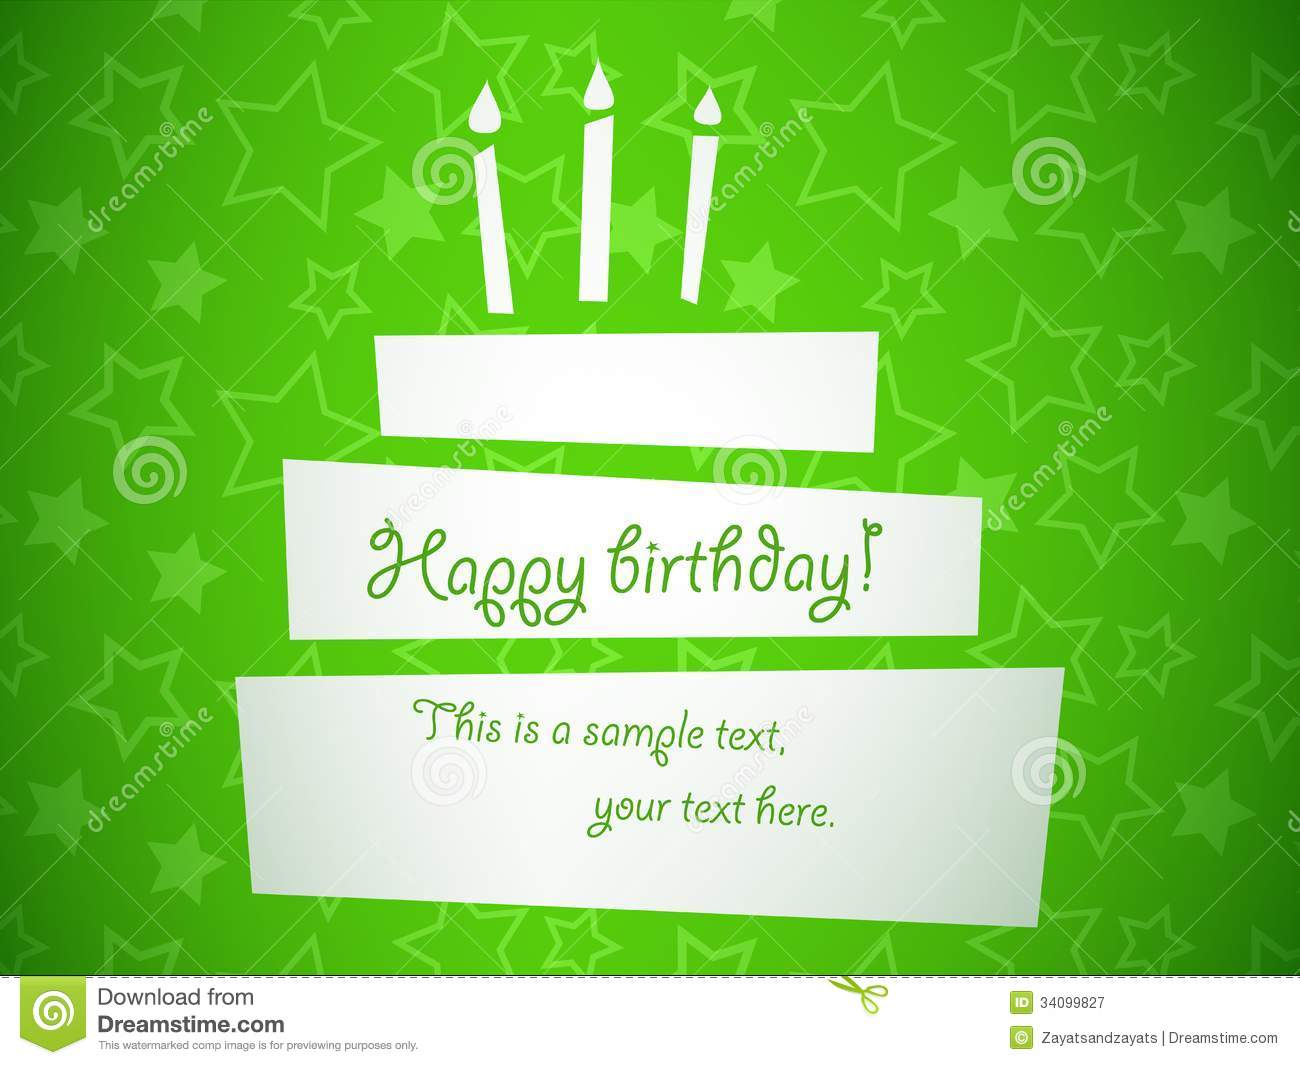 Birthday Cake Royalty Free Photography Image 34099827 – Green Birthday Card